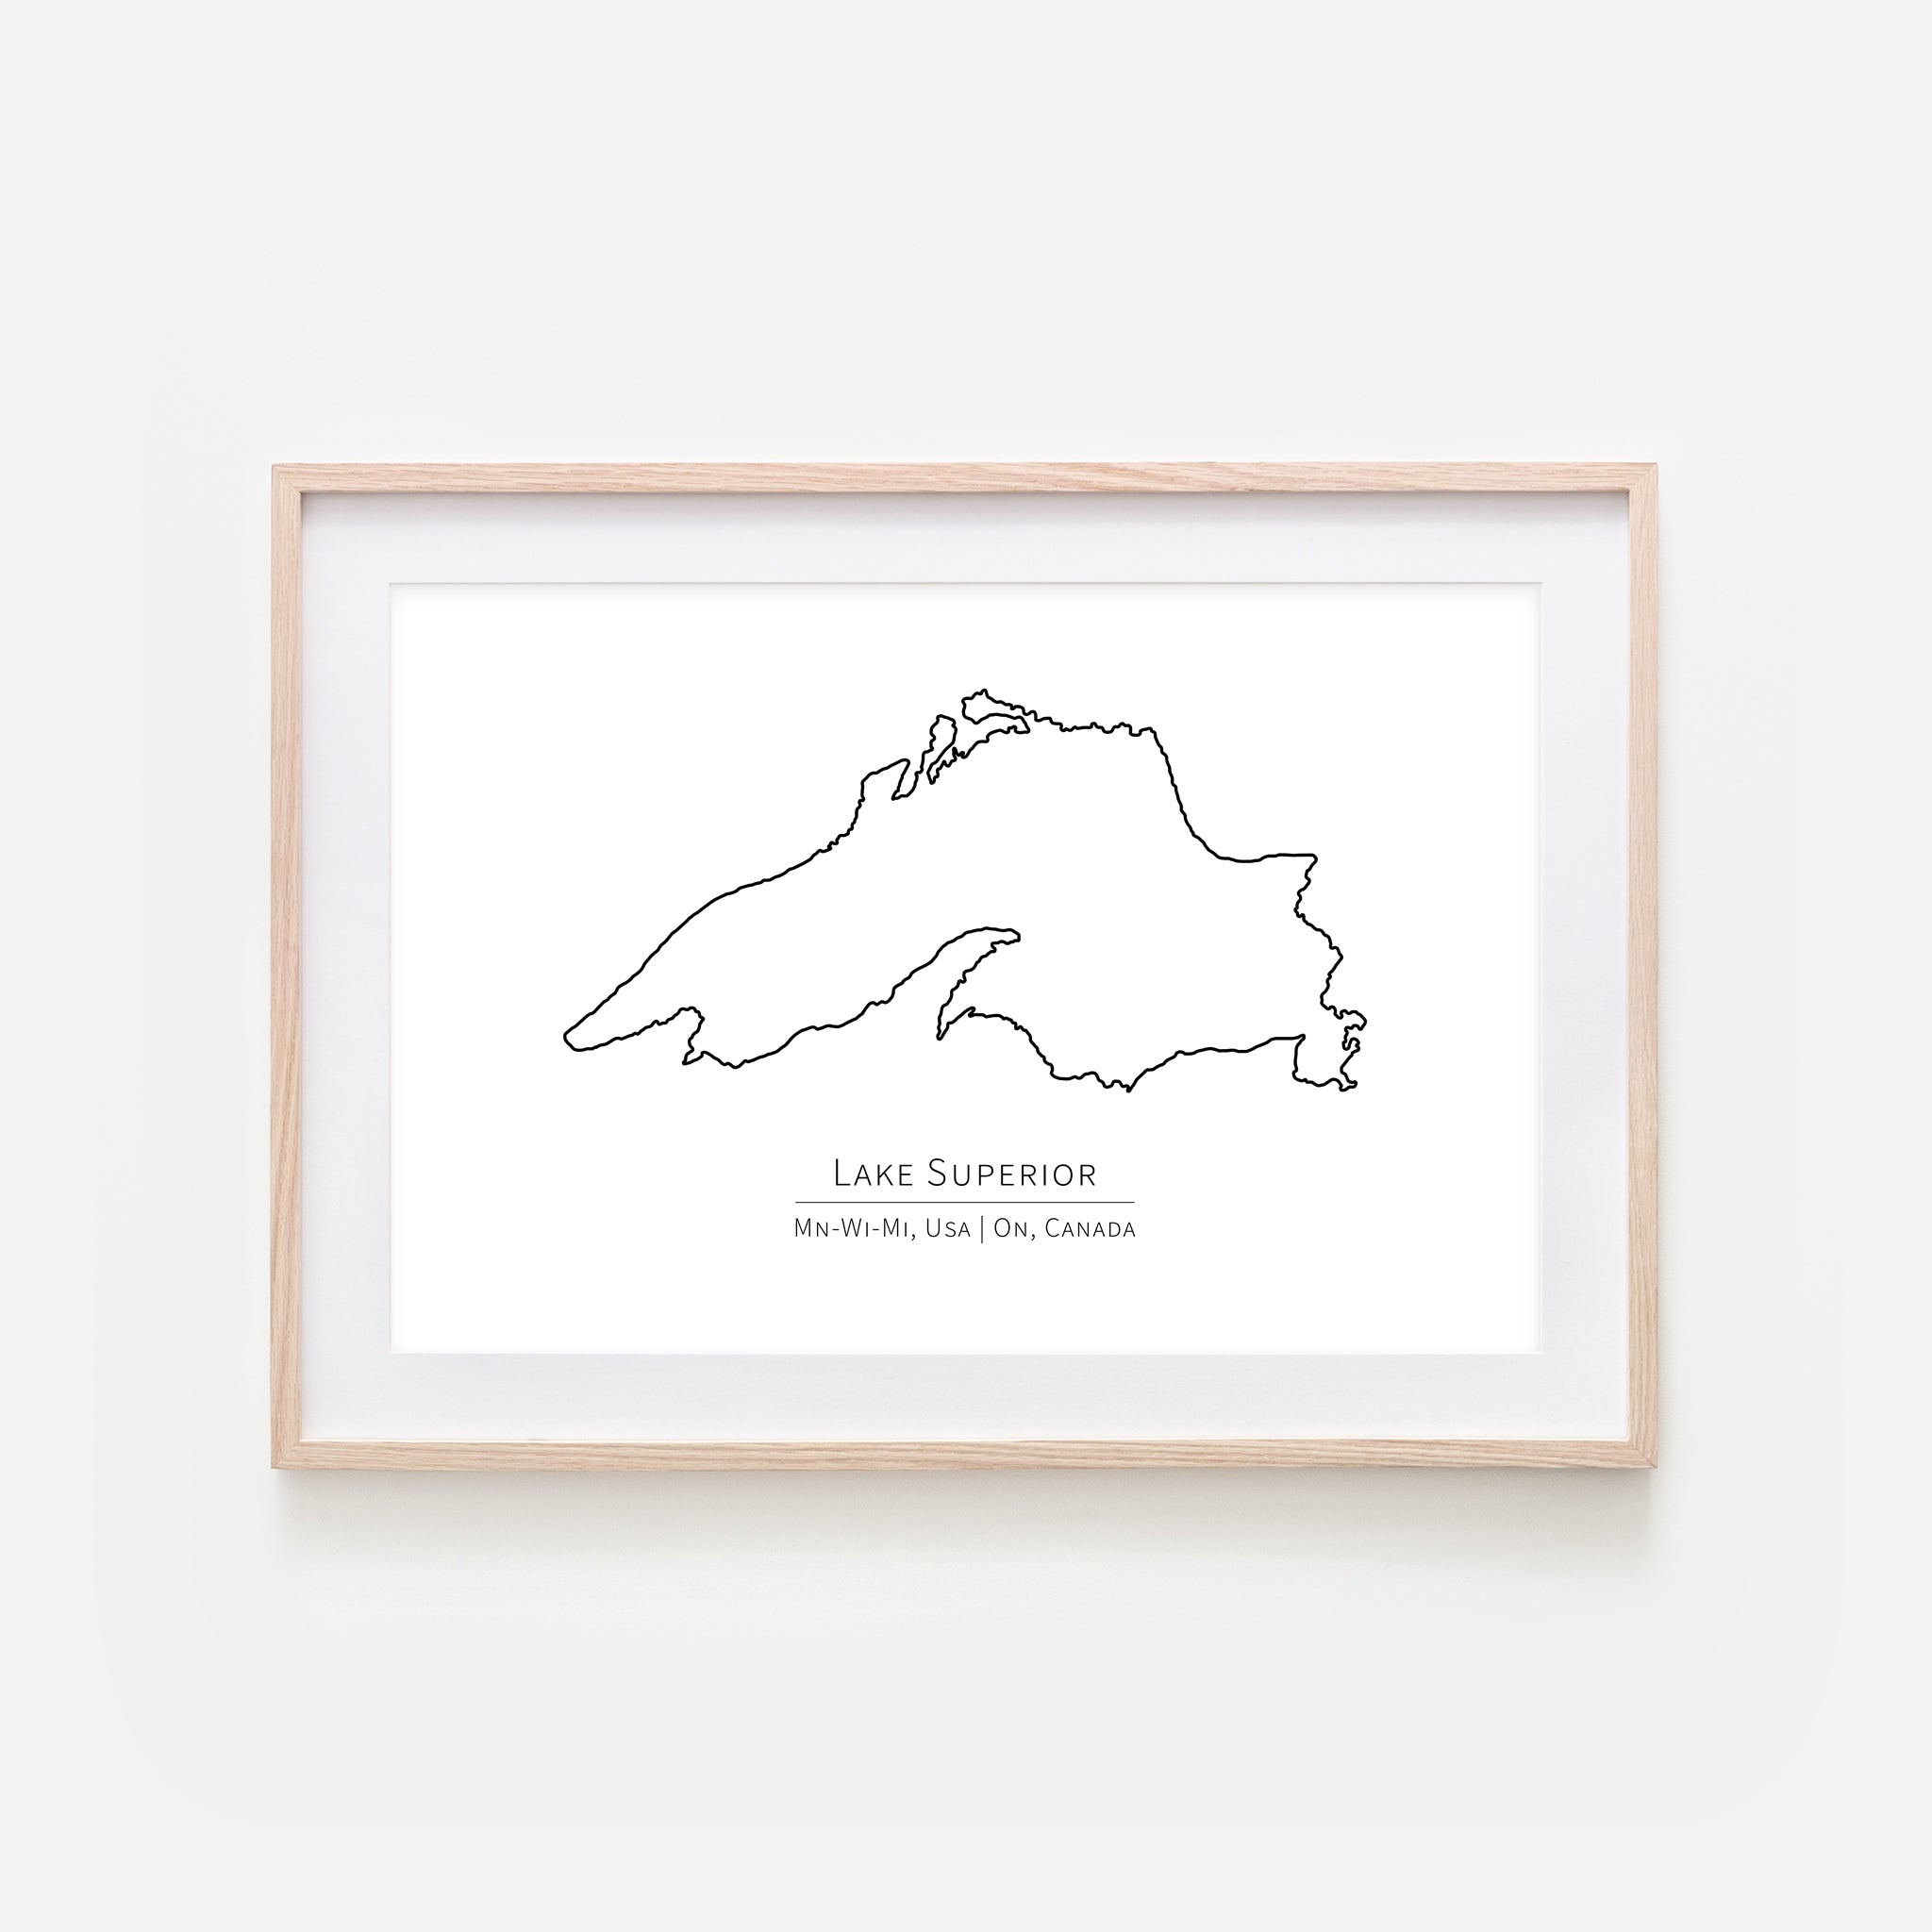 Lake Superior MN WI MI USA Ontario Canada Wall Art - Minimalist Map - Great Lakes House Decor - Black and White Print, Poster or Printable Download